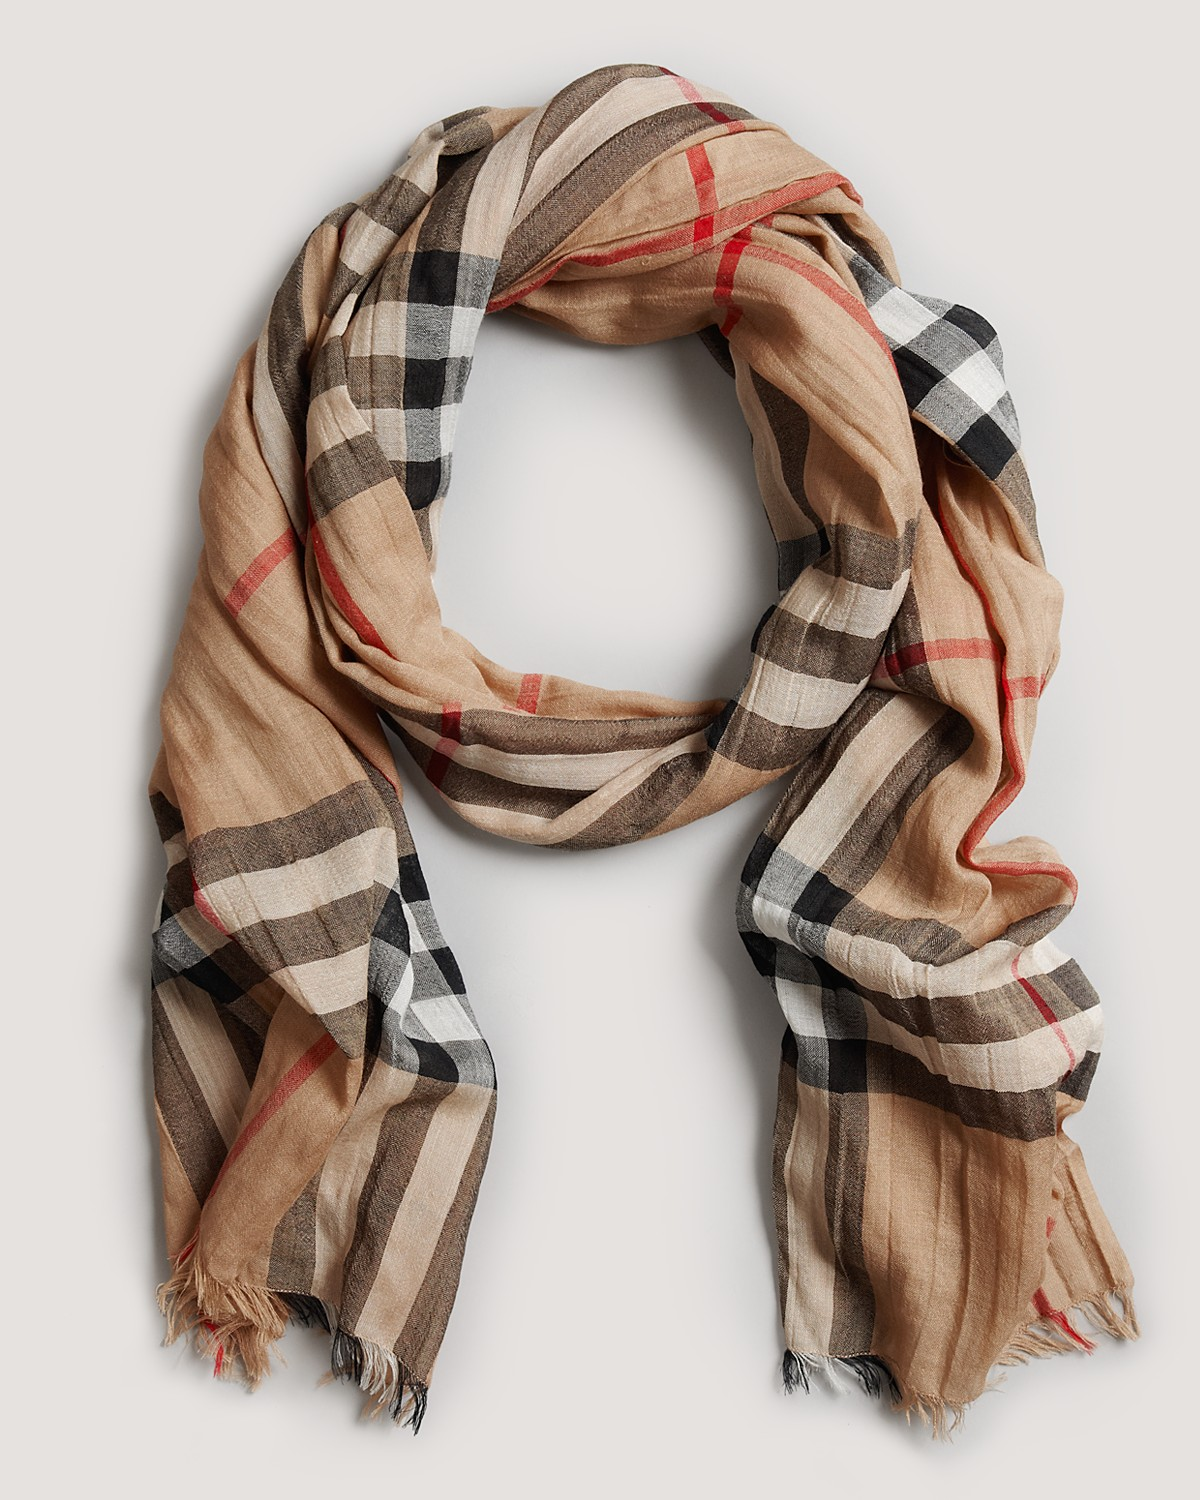 Giant Check Gauze Scarf in Camel by Burberry   Burberry   Pinterest ... c11bb129099